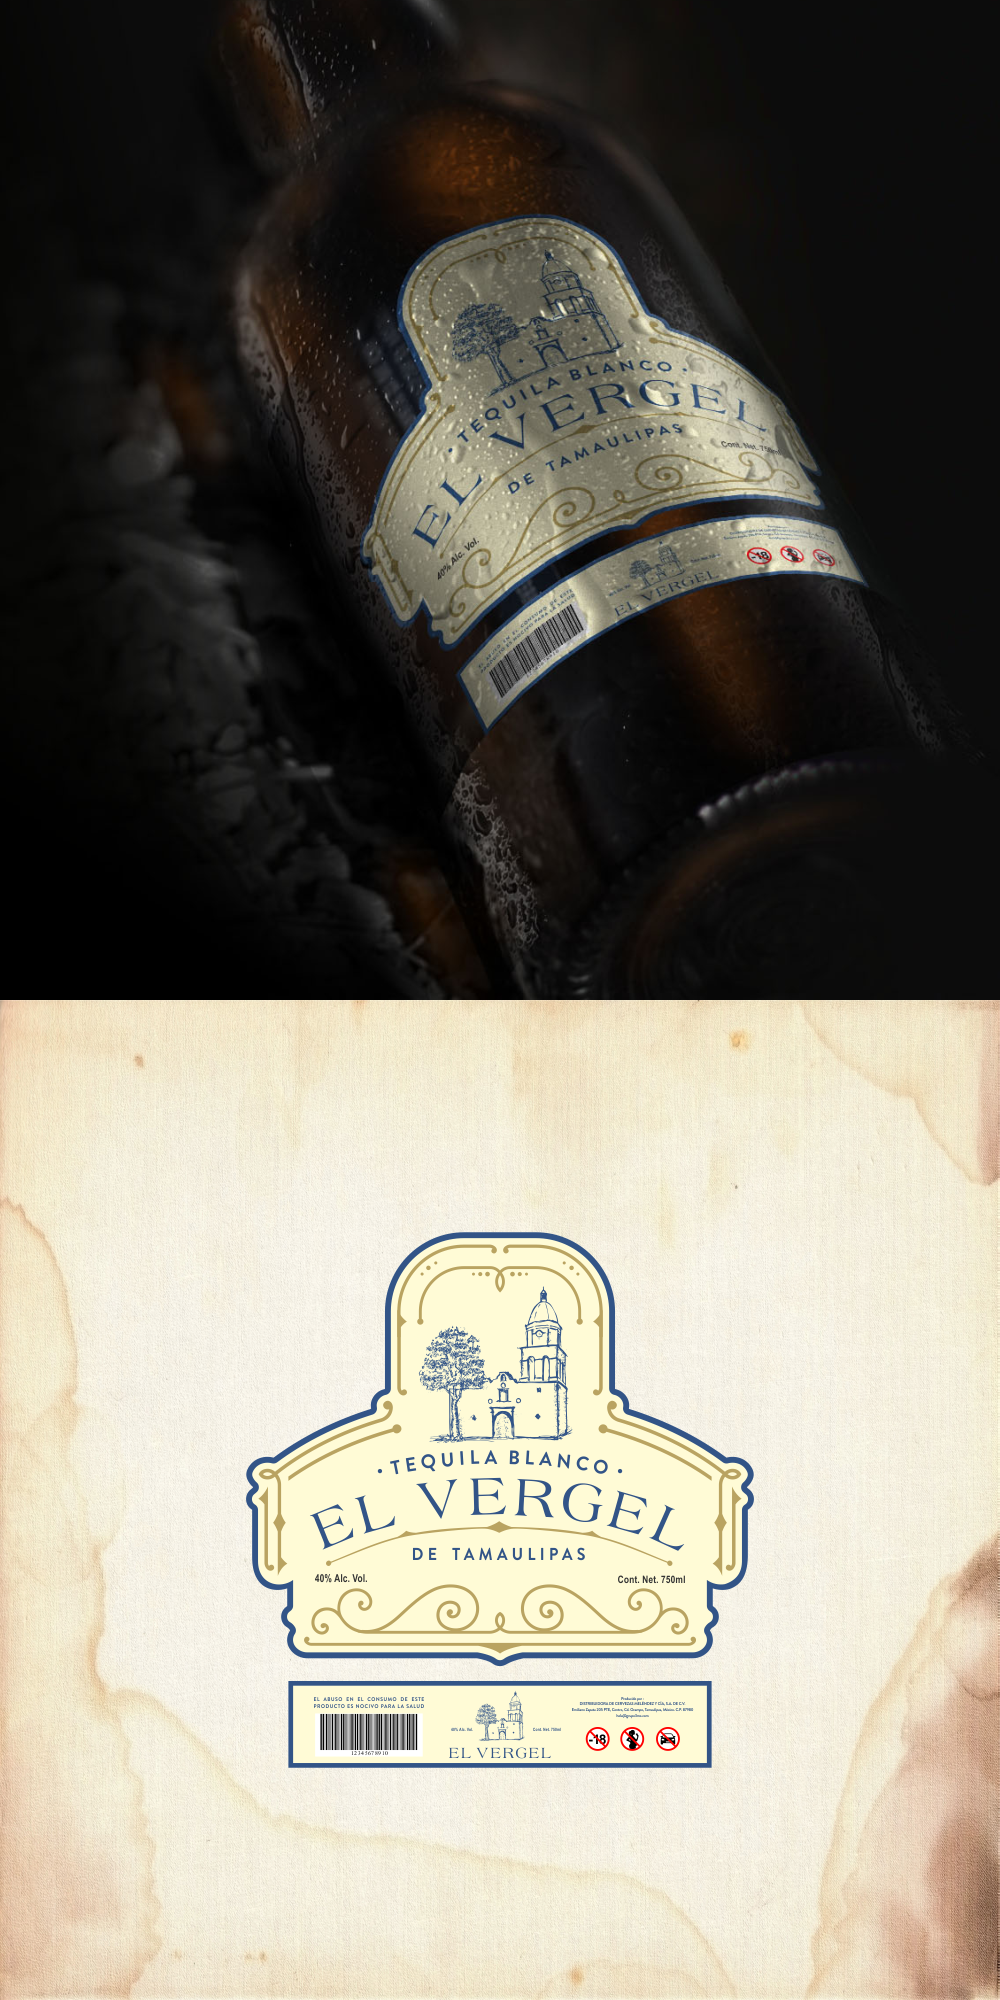 Create an outstanding Label for a Small Distillery in Ocampo, Tamaulipas Mexico